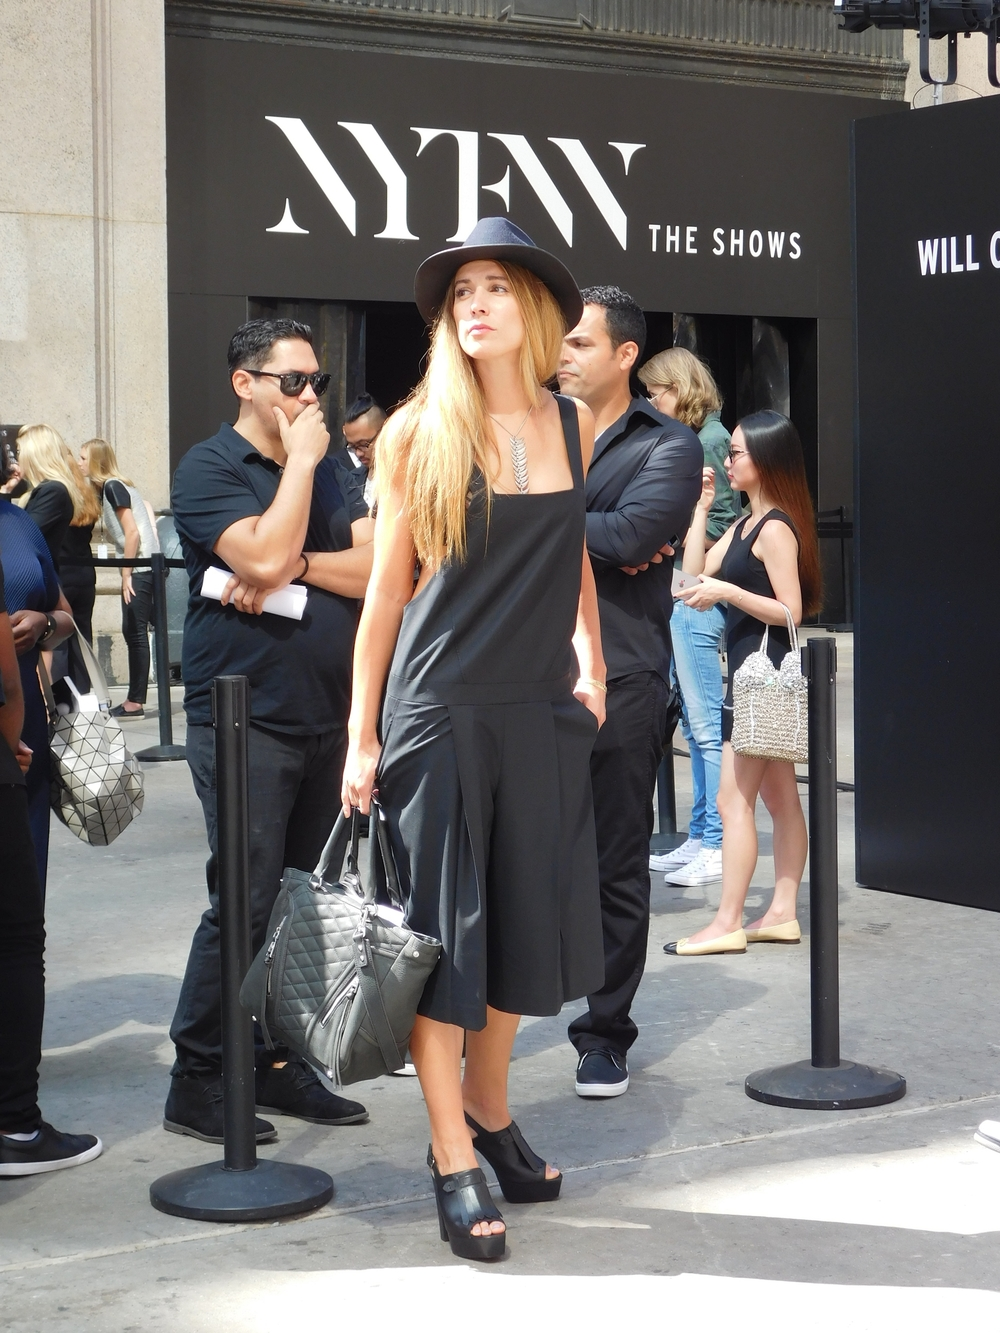 Can't go wrong with wearing all black at Fashion Week.